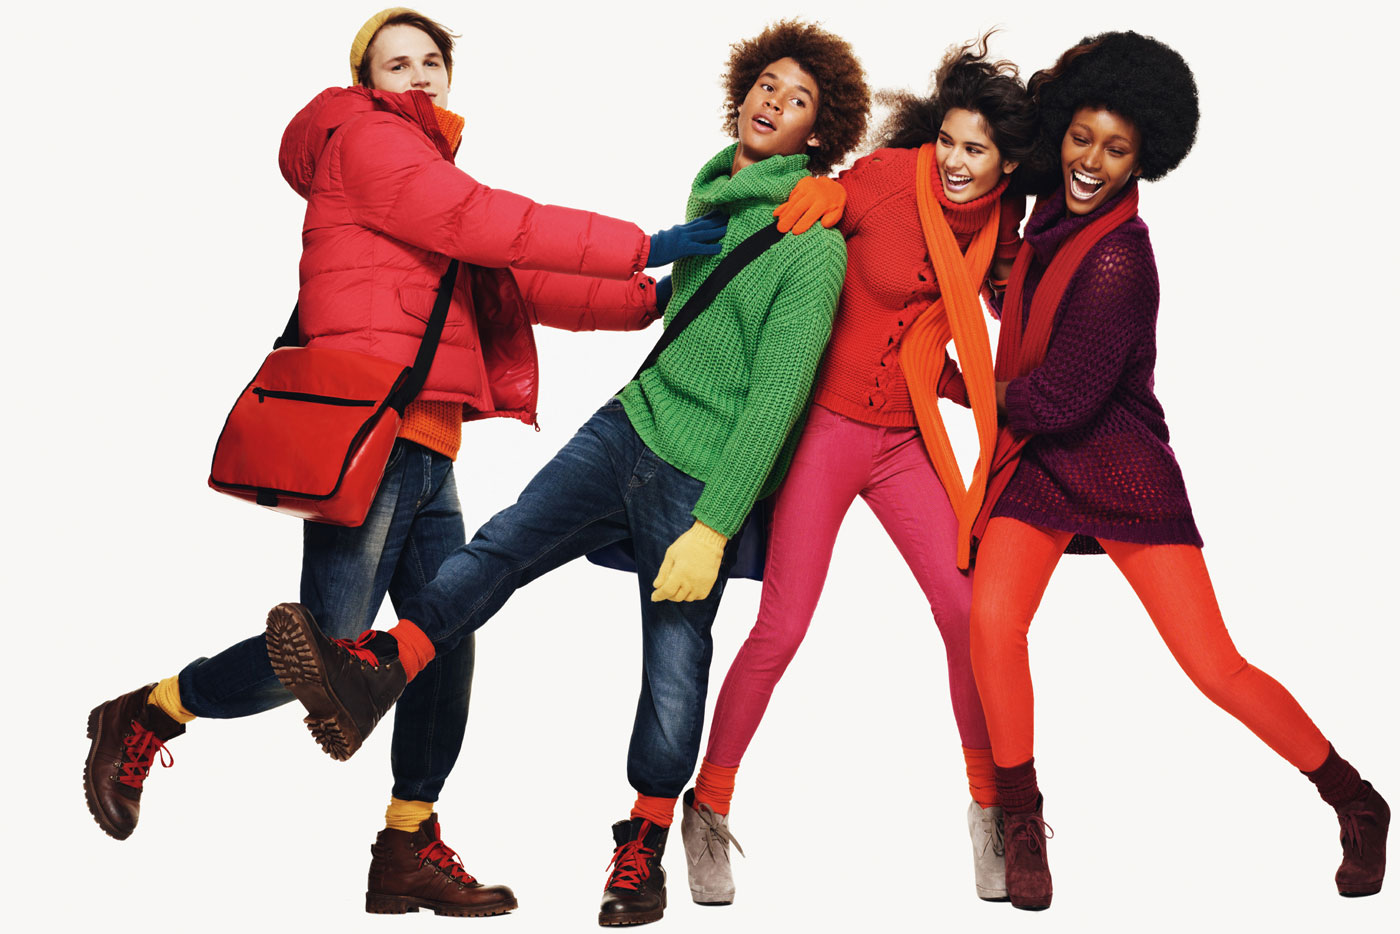 Christian Wallpaper Fall United Colors Of Benetton By Josh Olins